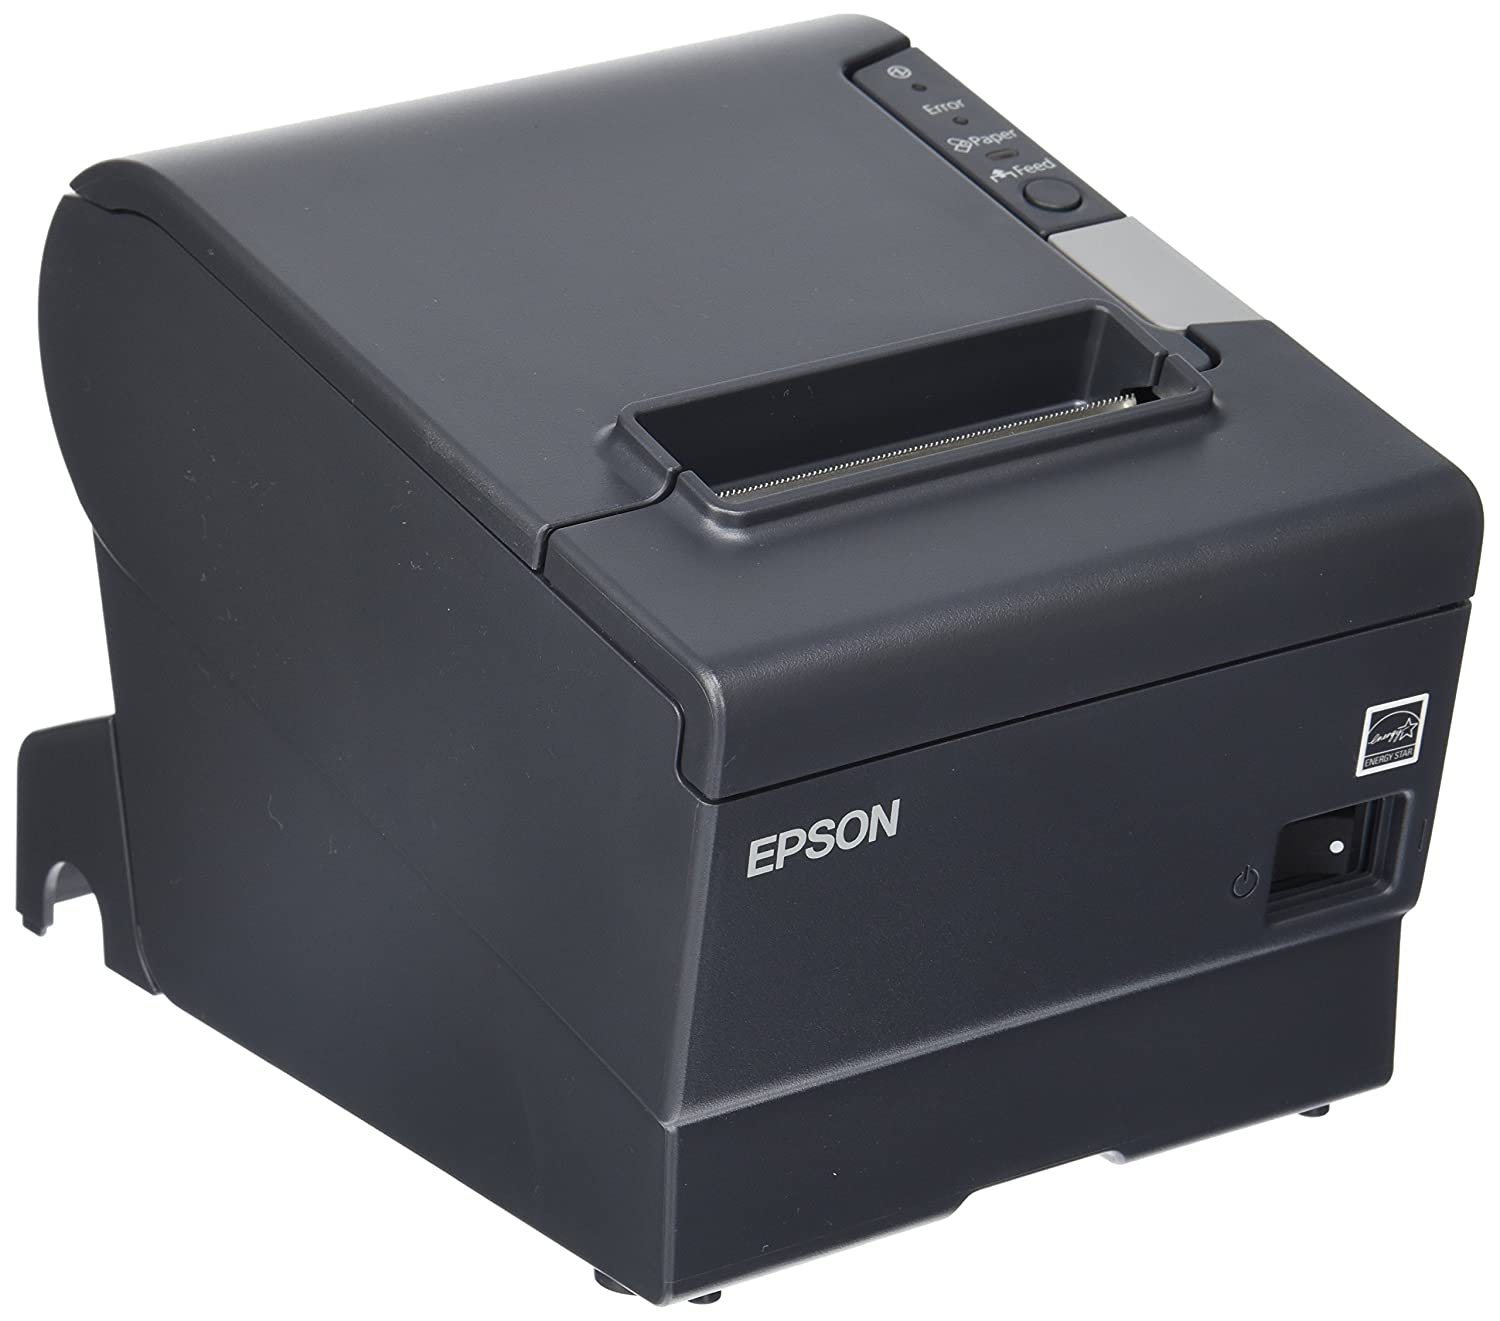 Epson C31CA85834 TM-T88V Direct Thermal Receipt Printer PAR Plus USB EDG PWR Energy Star, Monochrome, 5.8